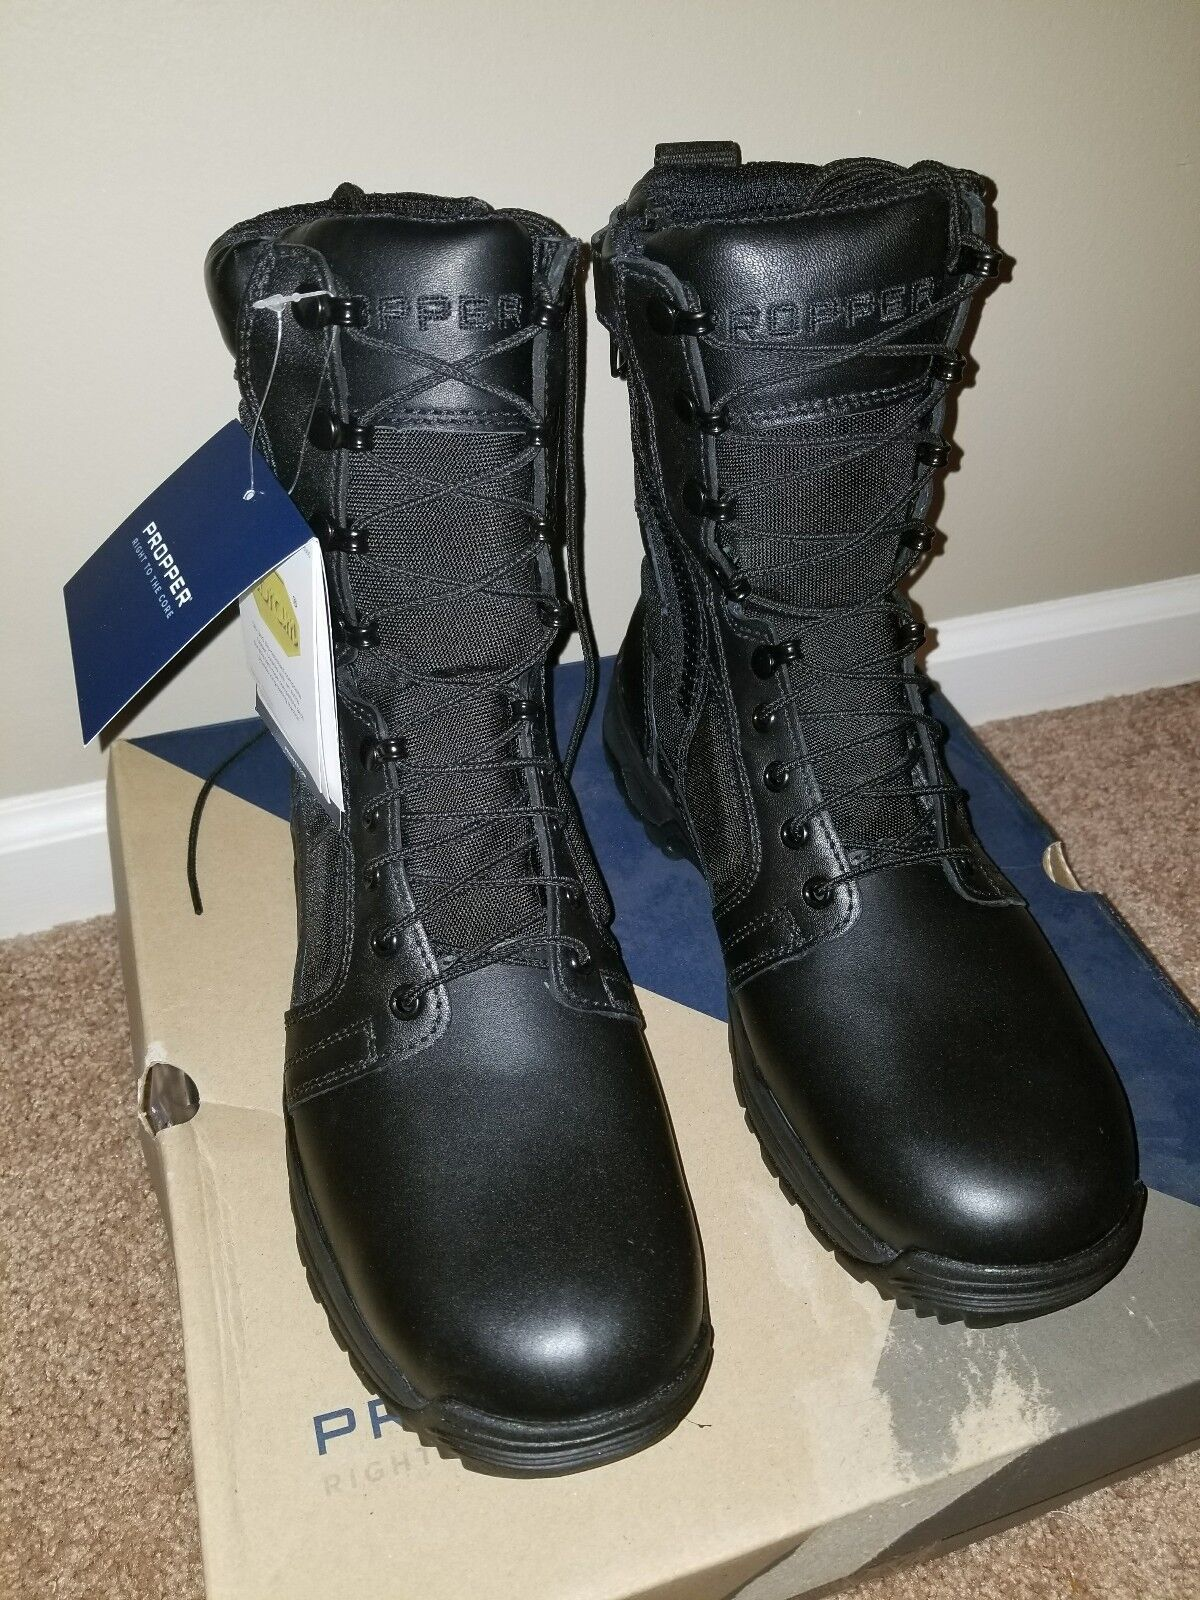 Propper F4511 8  Series 200 Waterproof Side Zip Military Tactical Boots